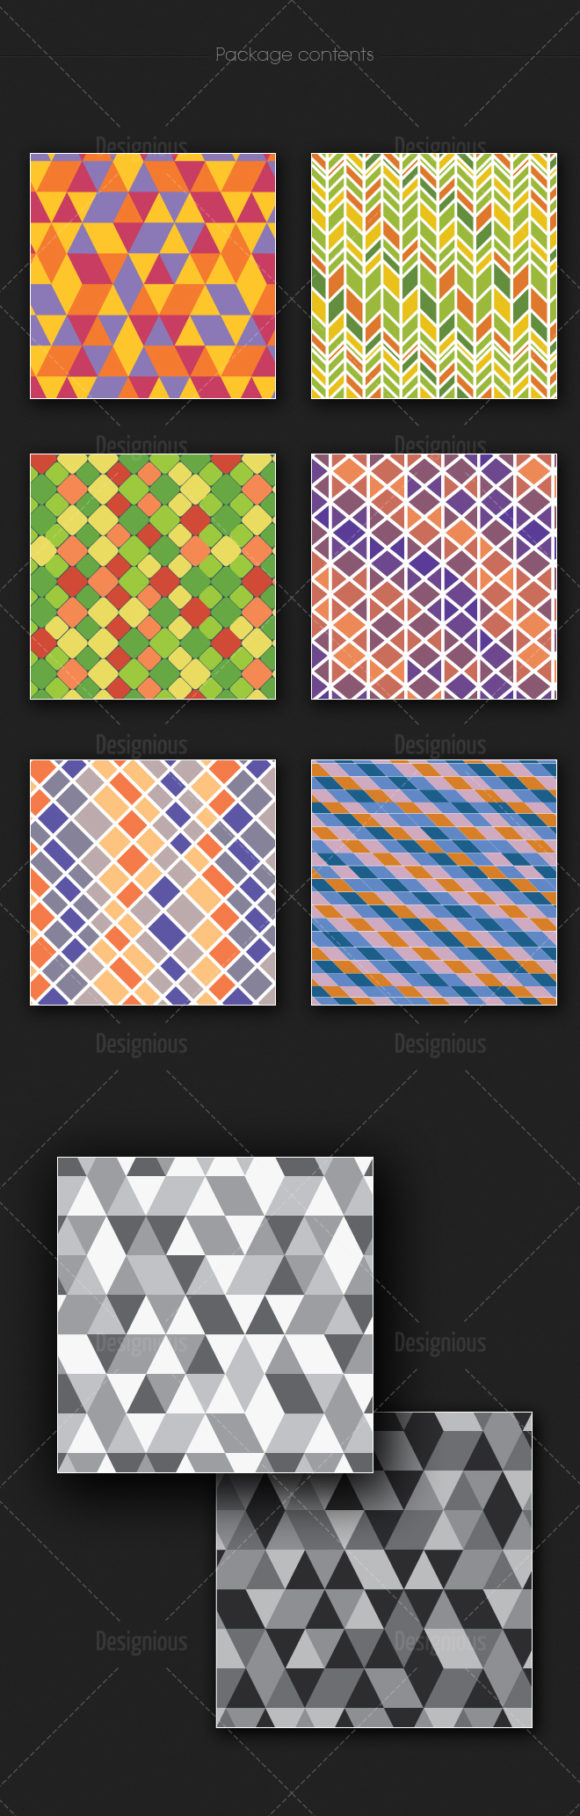 Seamless Patterns Vector Pack 170 6